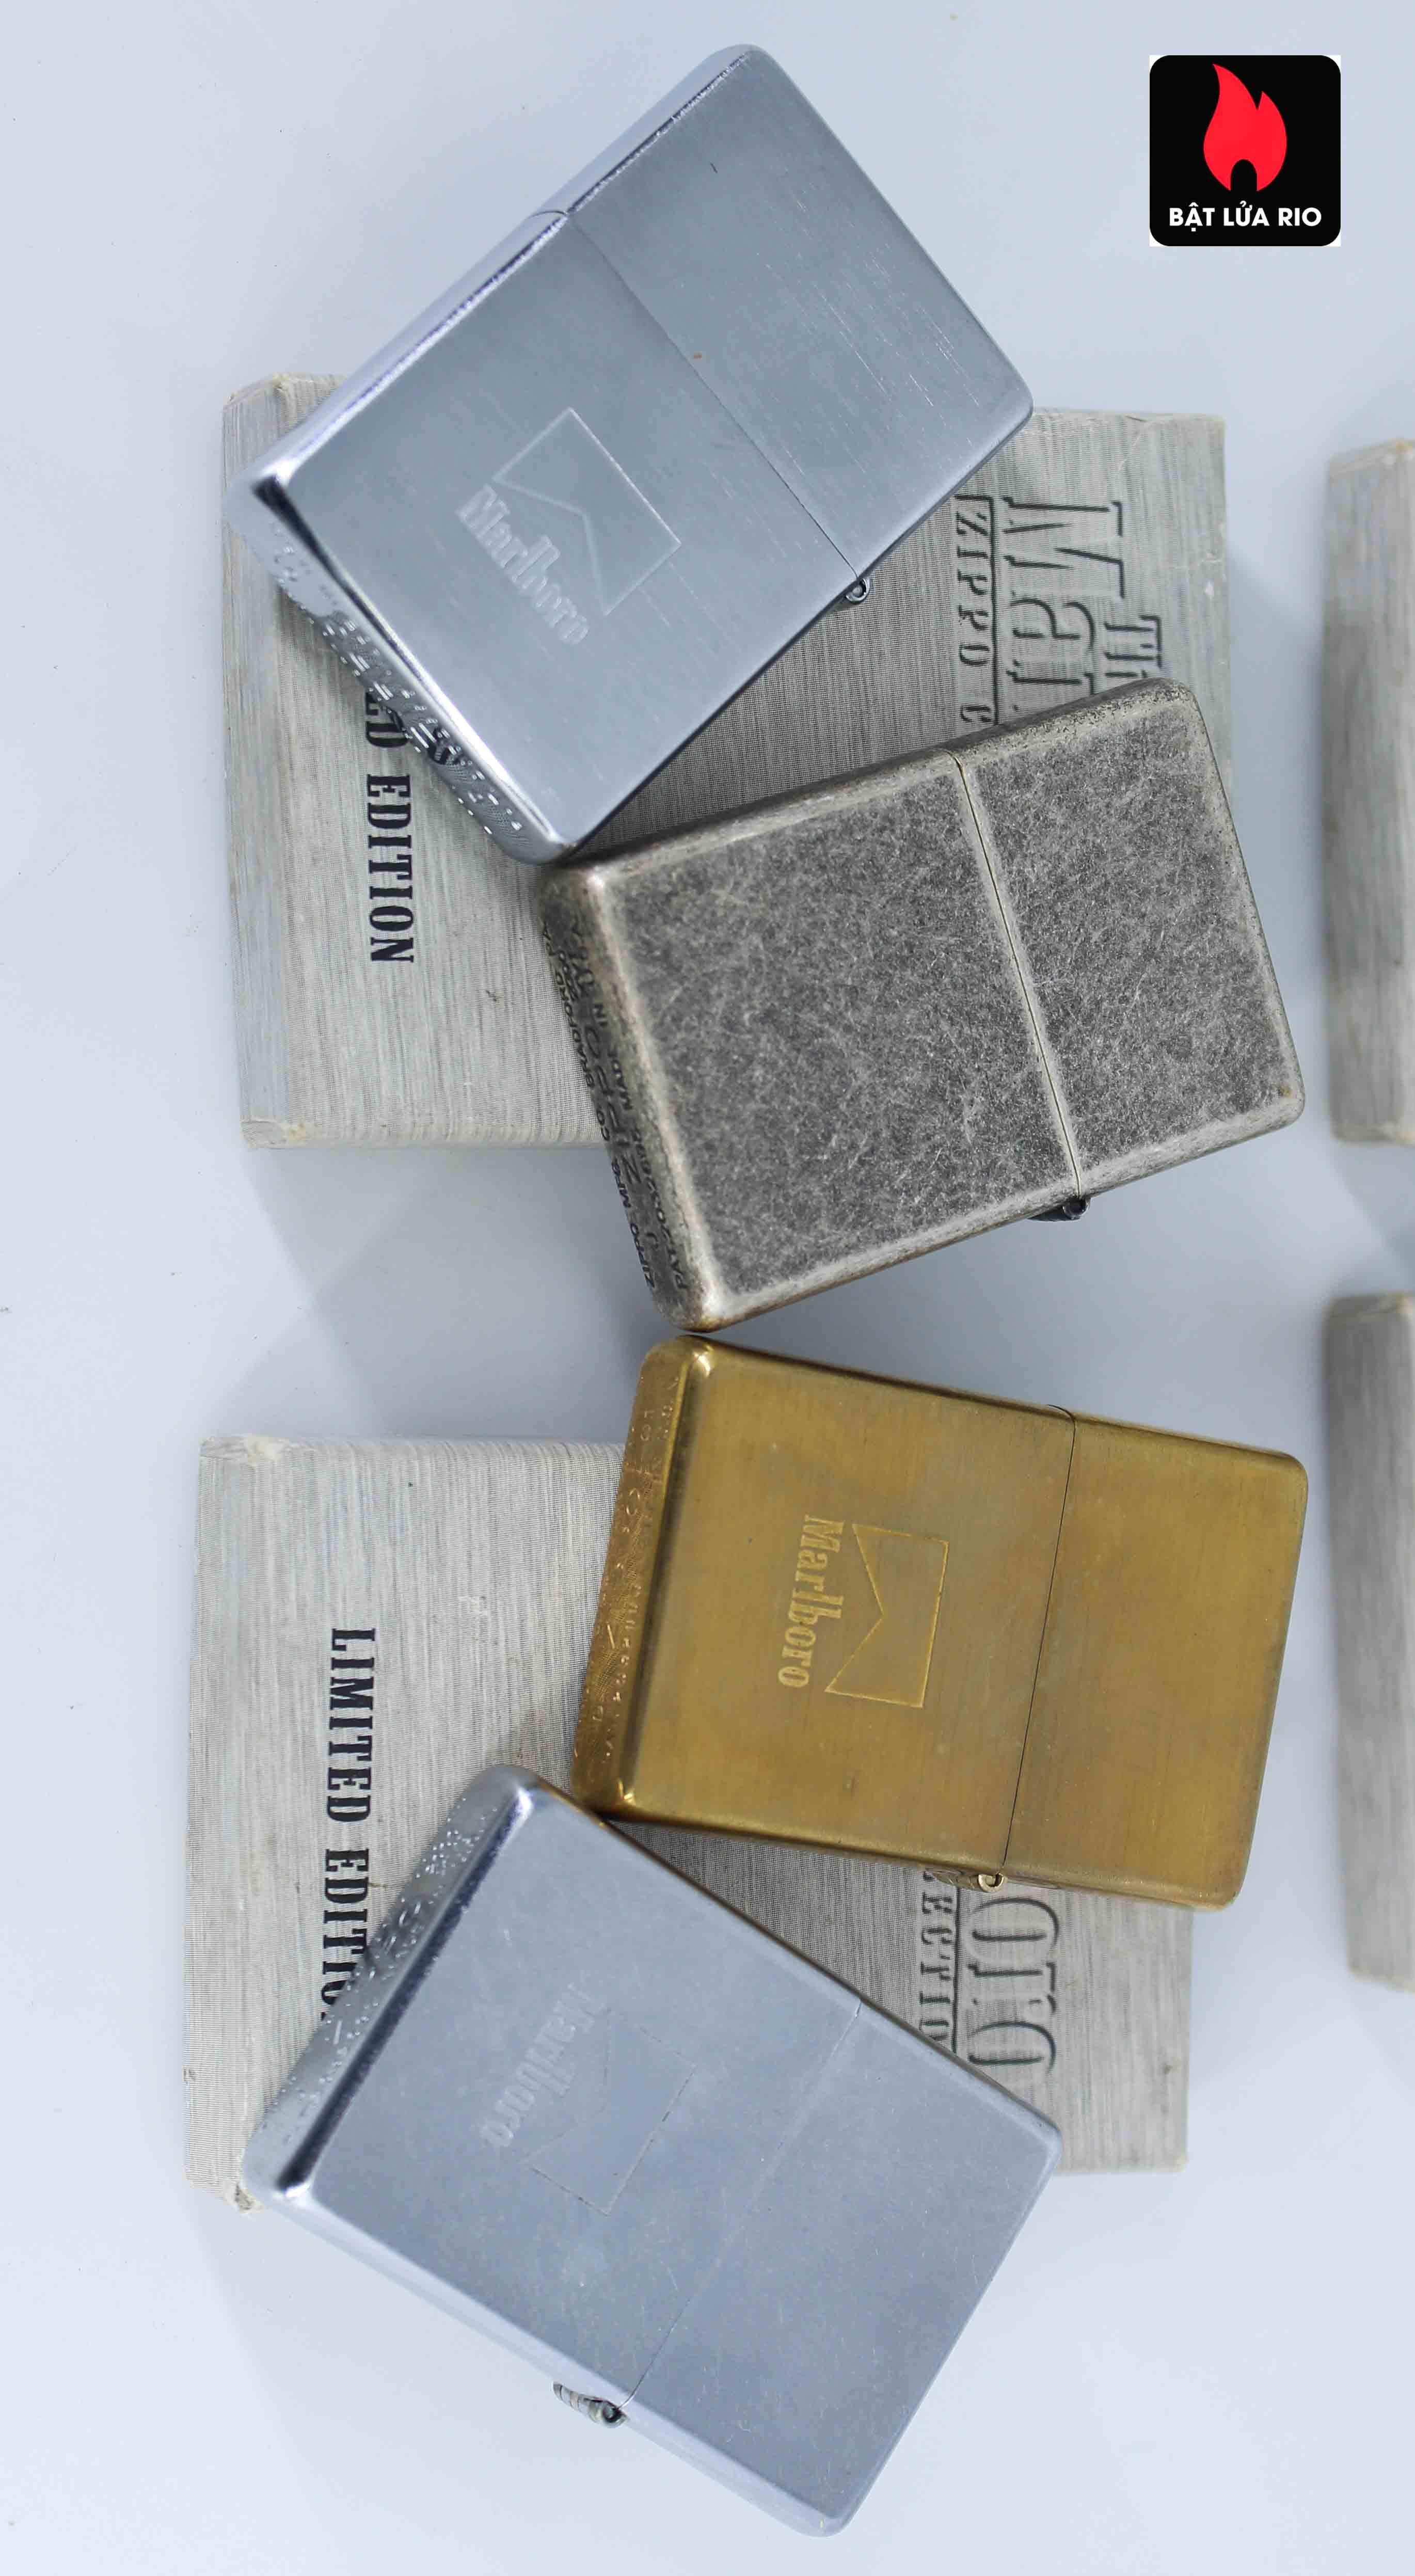 Zippo Set - Zippo 2000-2001 - Marlboro collection Limited Edition 8